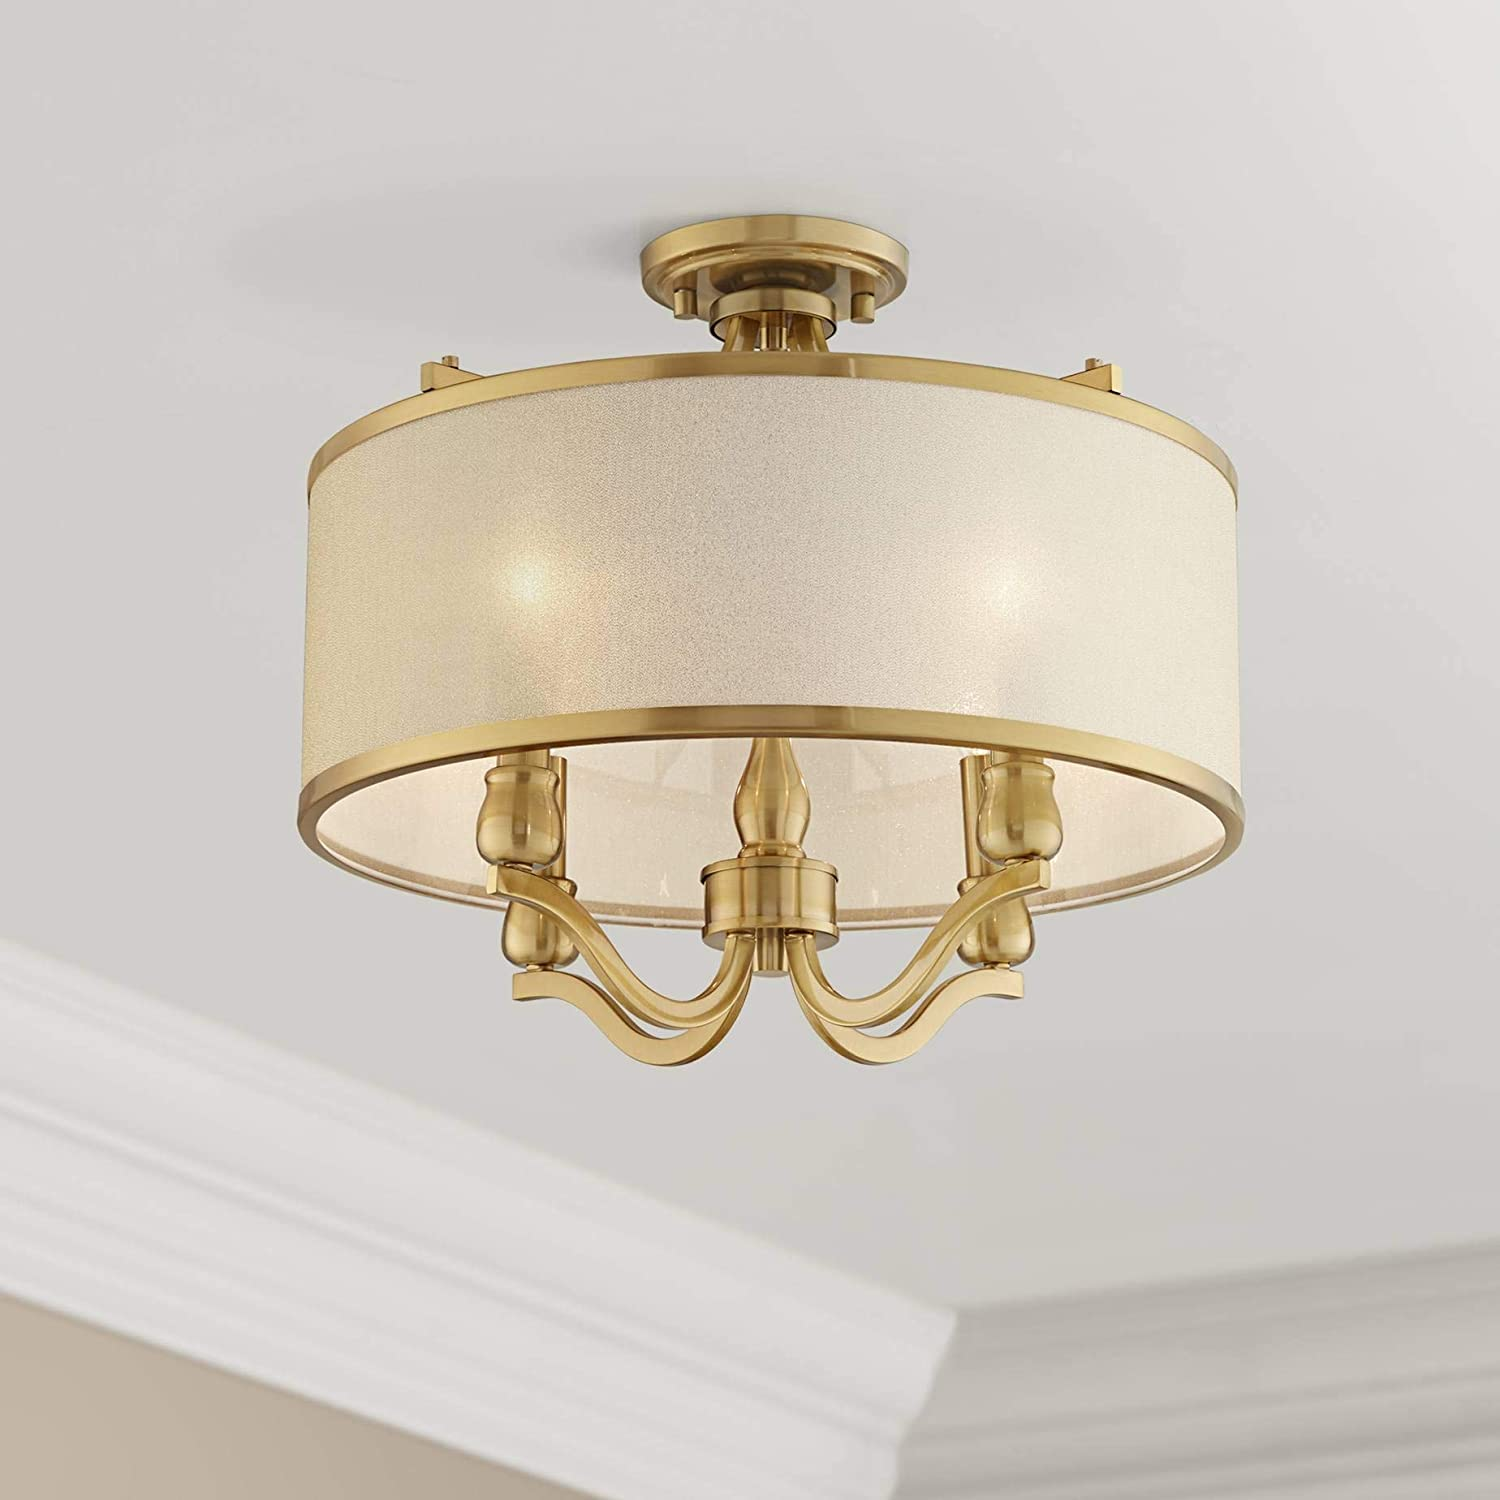 Nor Ceiling Light Semi Flush Mount Fixture Antique Brass 18 Wide 4-Light Gold Organza Shade for Bedroom Kitchen Living Room Hallway Bathroom – Possini Euro Design